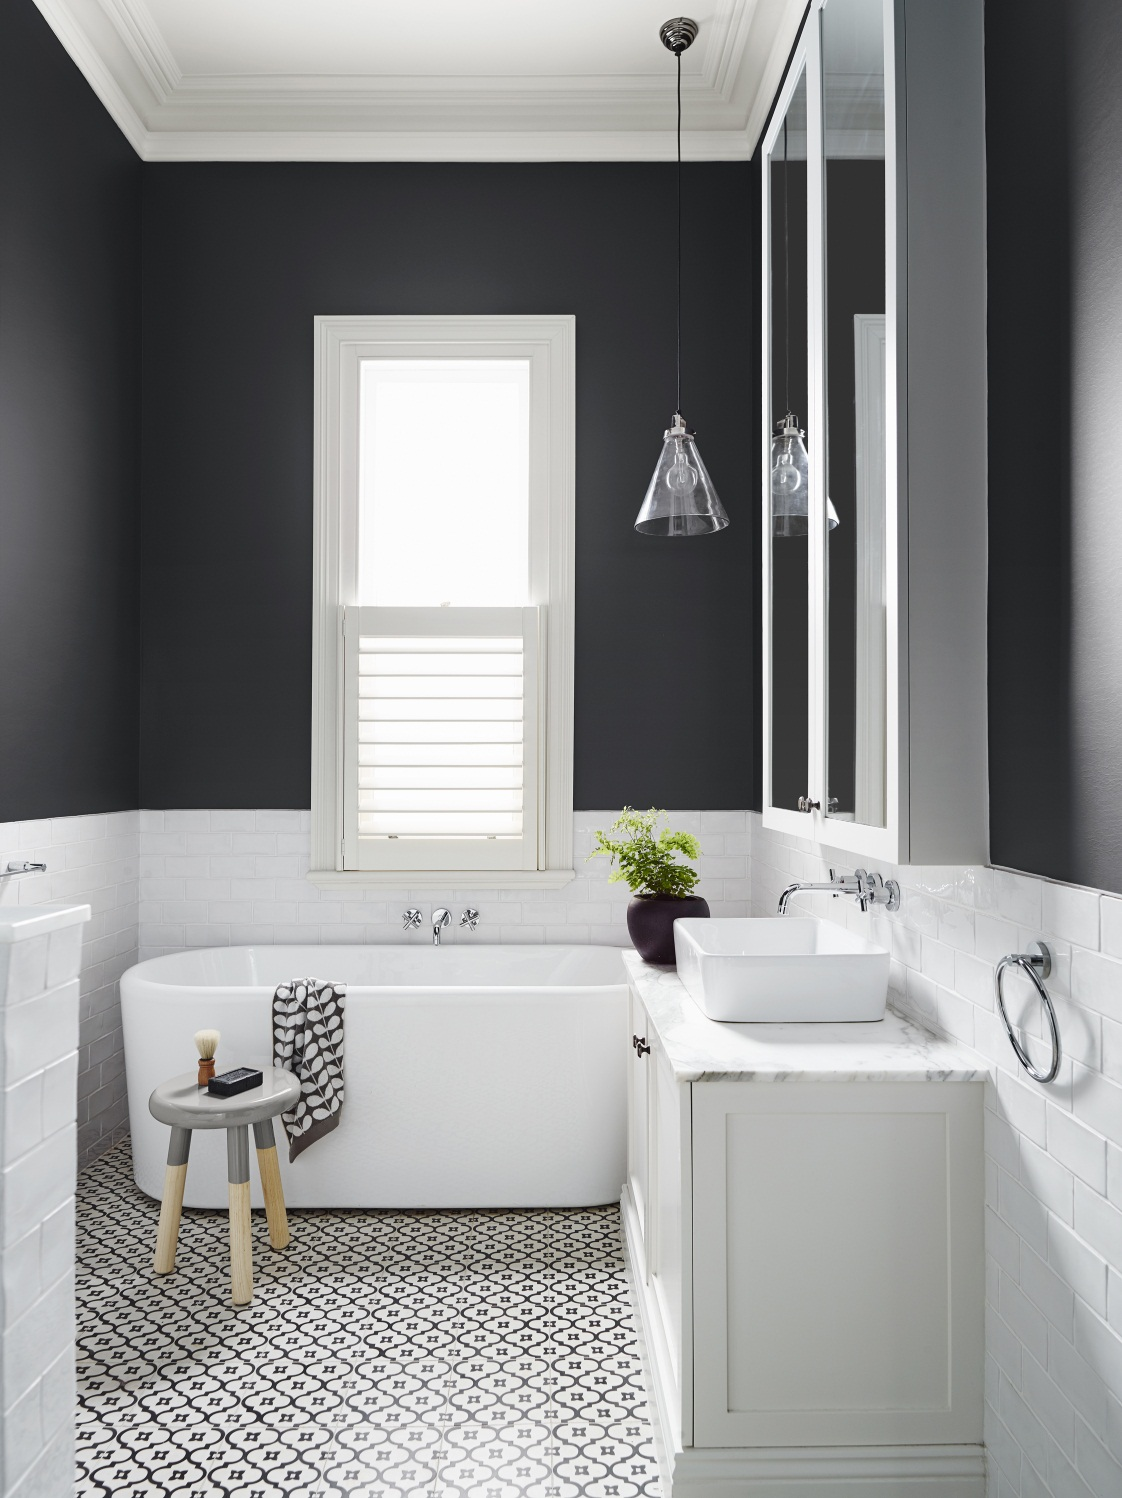 Paint Colors For A Black And White Bathroom remodelaholic | most popular black paint colors